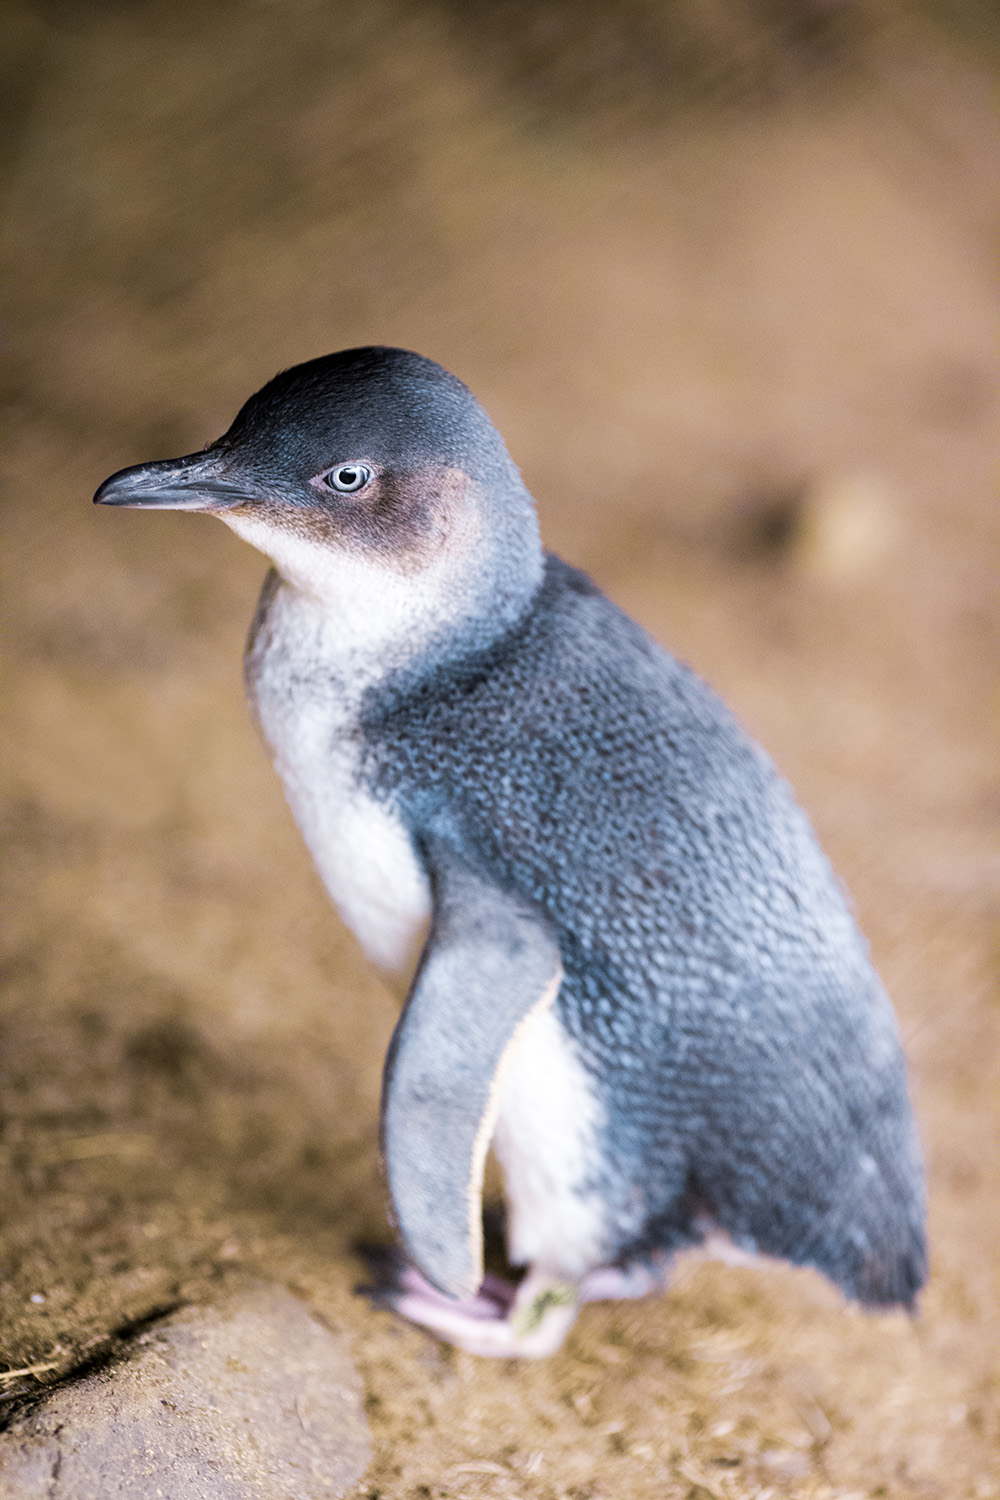 Penguin chilling out